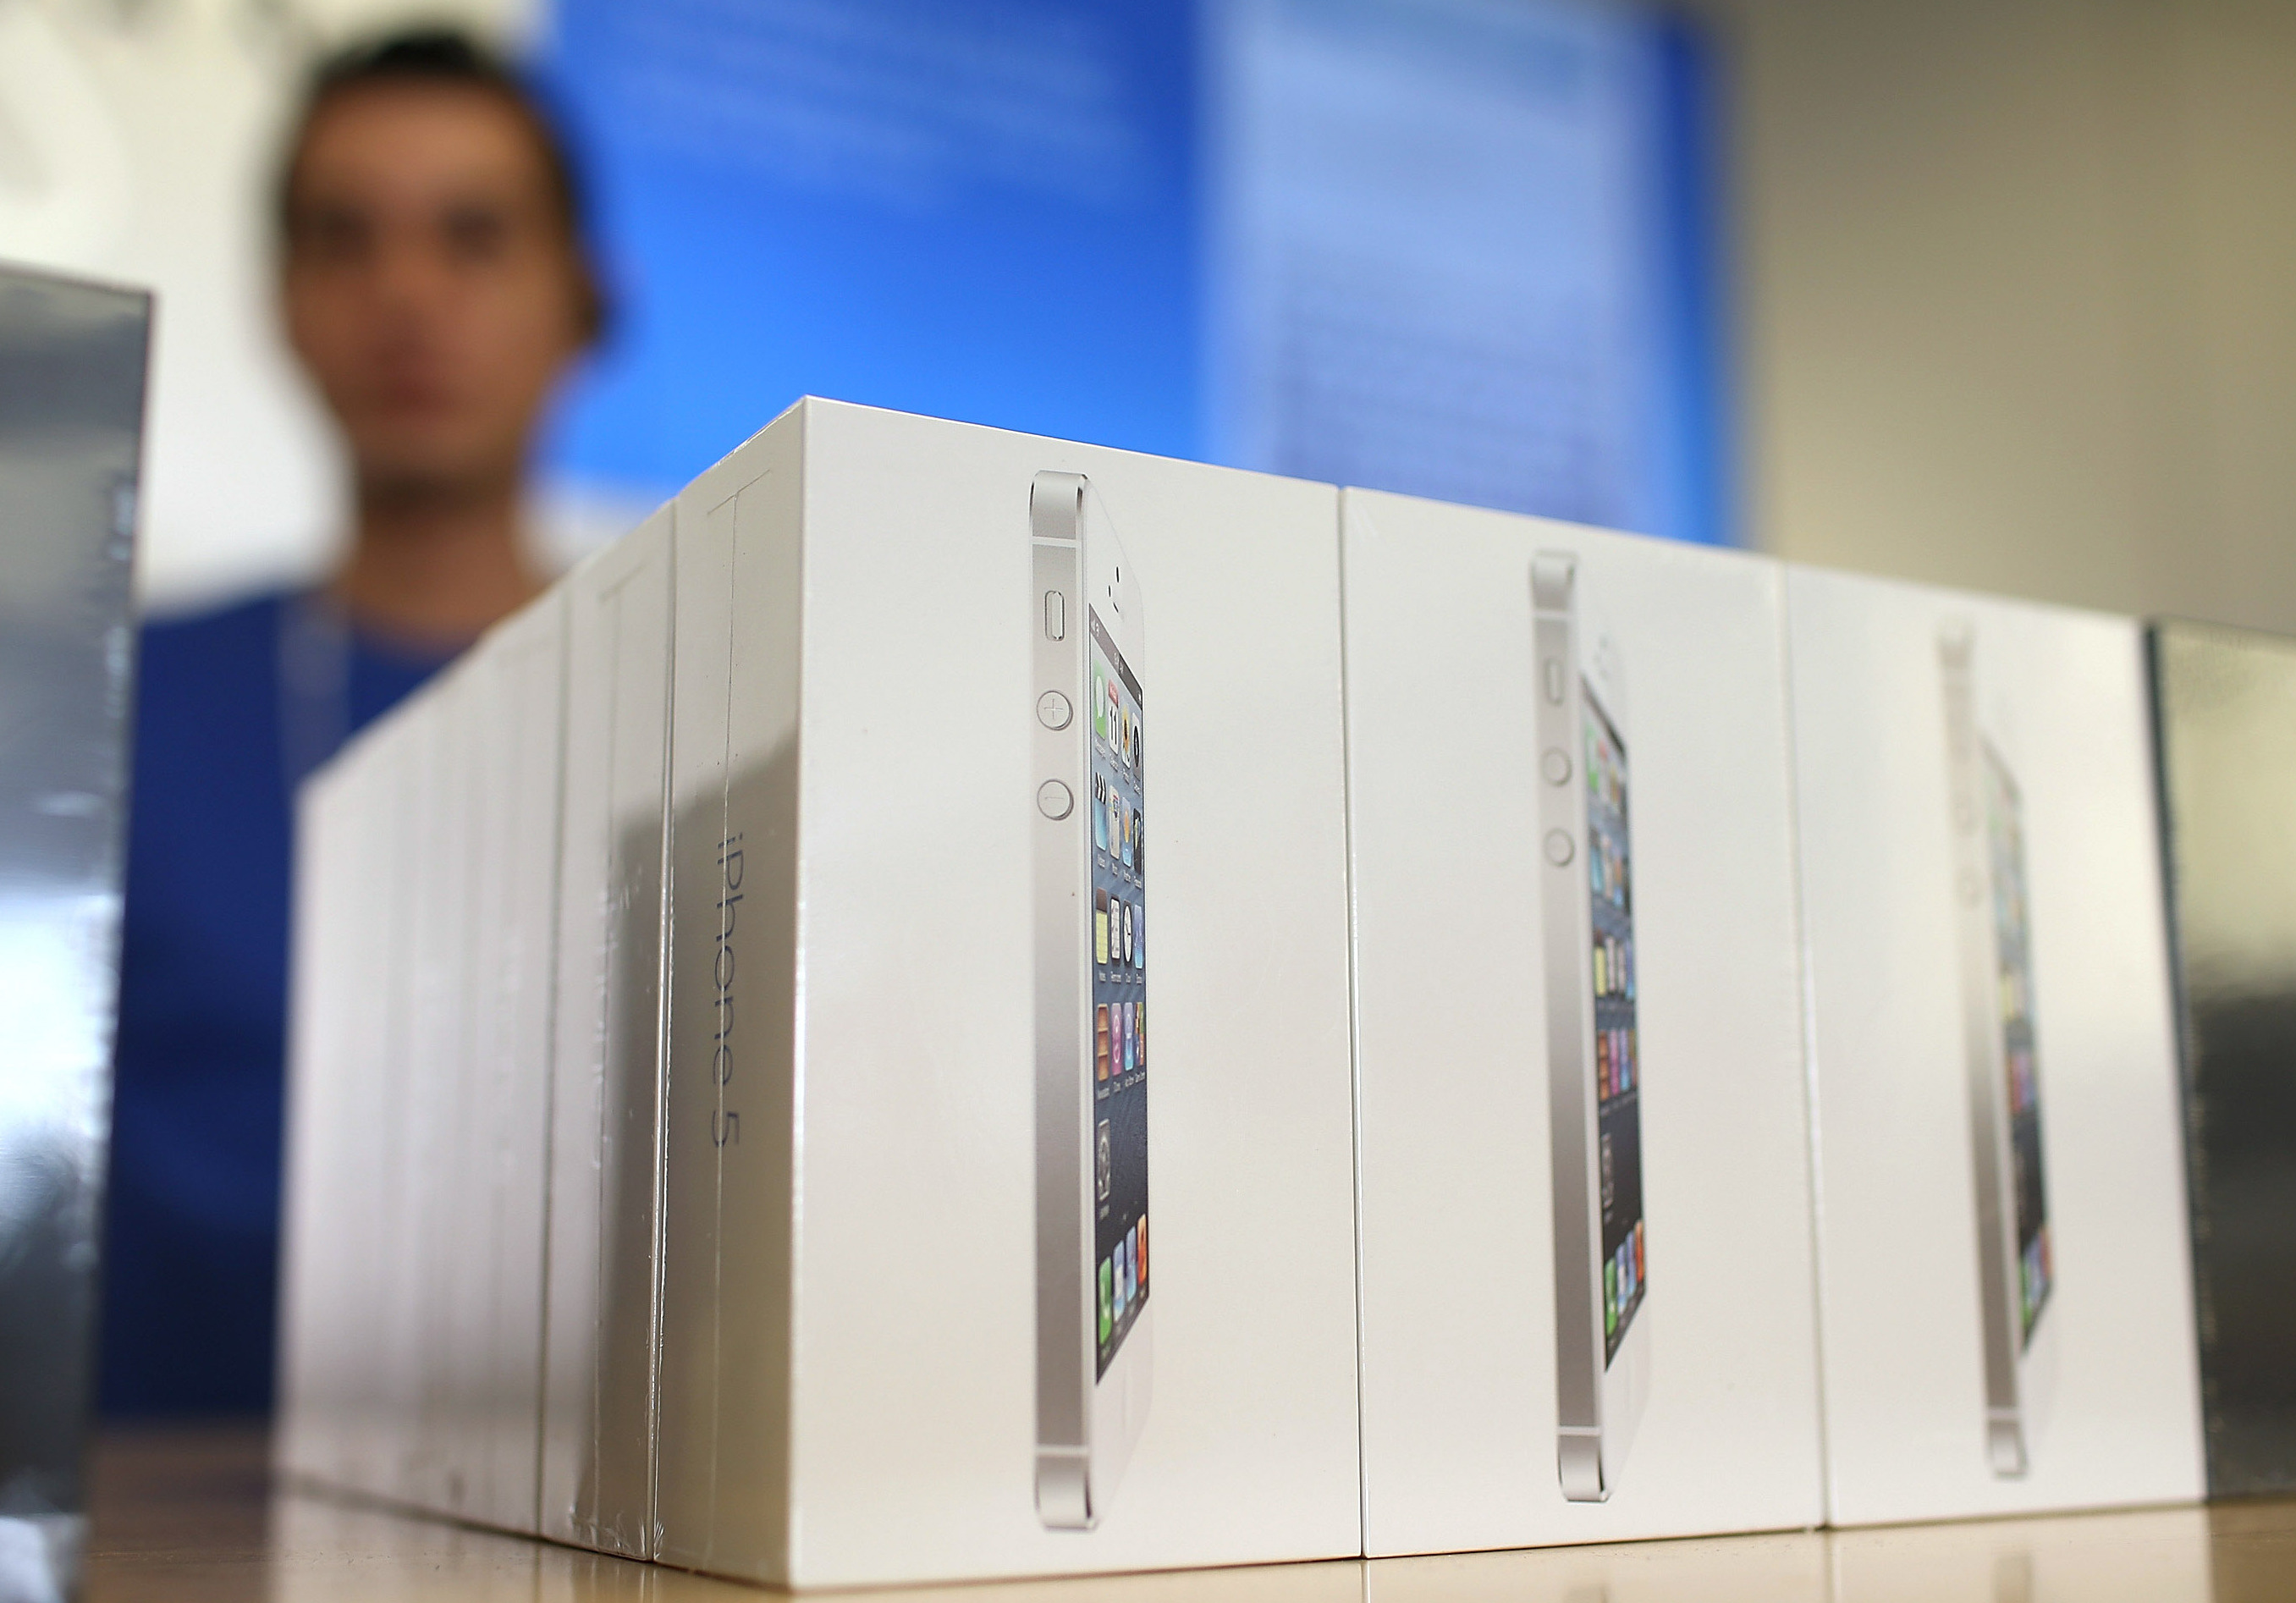 How to avoid becoming a victim of fraud when buying iPhone